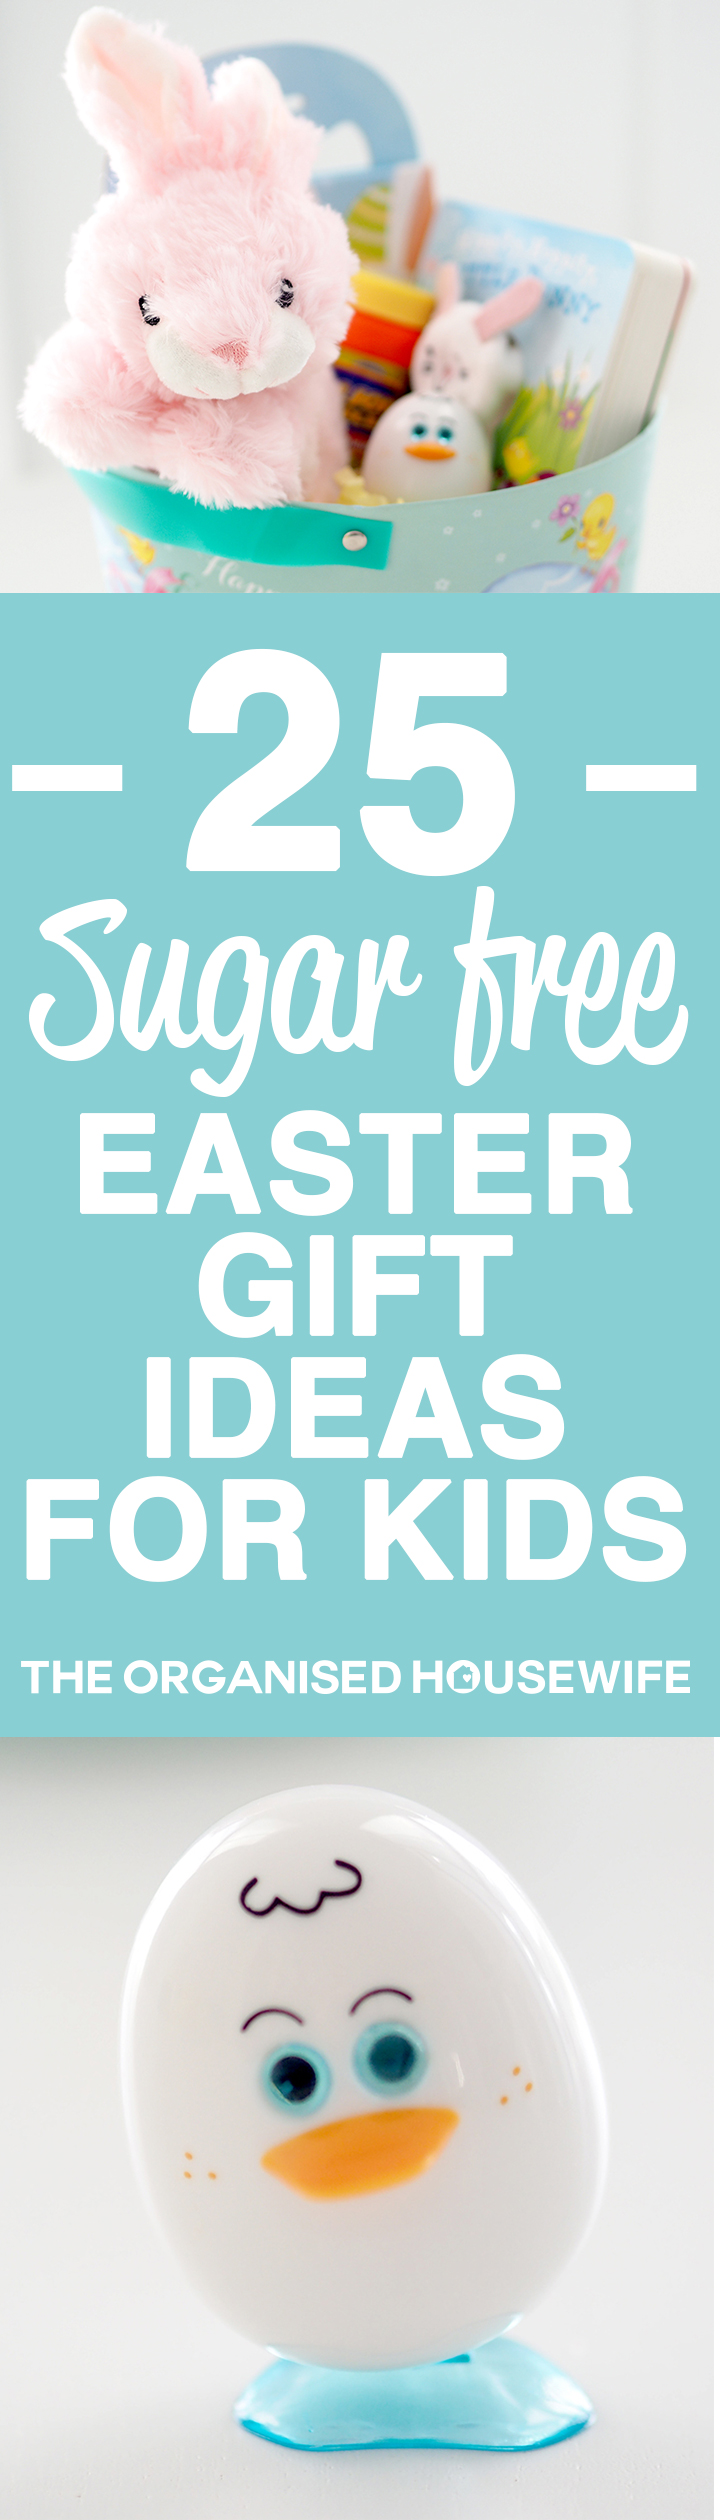 25 sugar free easter gift ideas for kids the organised housewife ive created a litte sugar free easter basket for my nieces to give negle Gallery